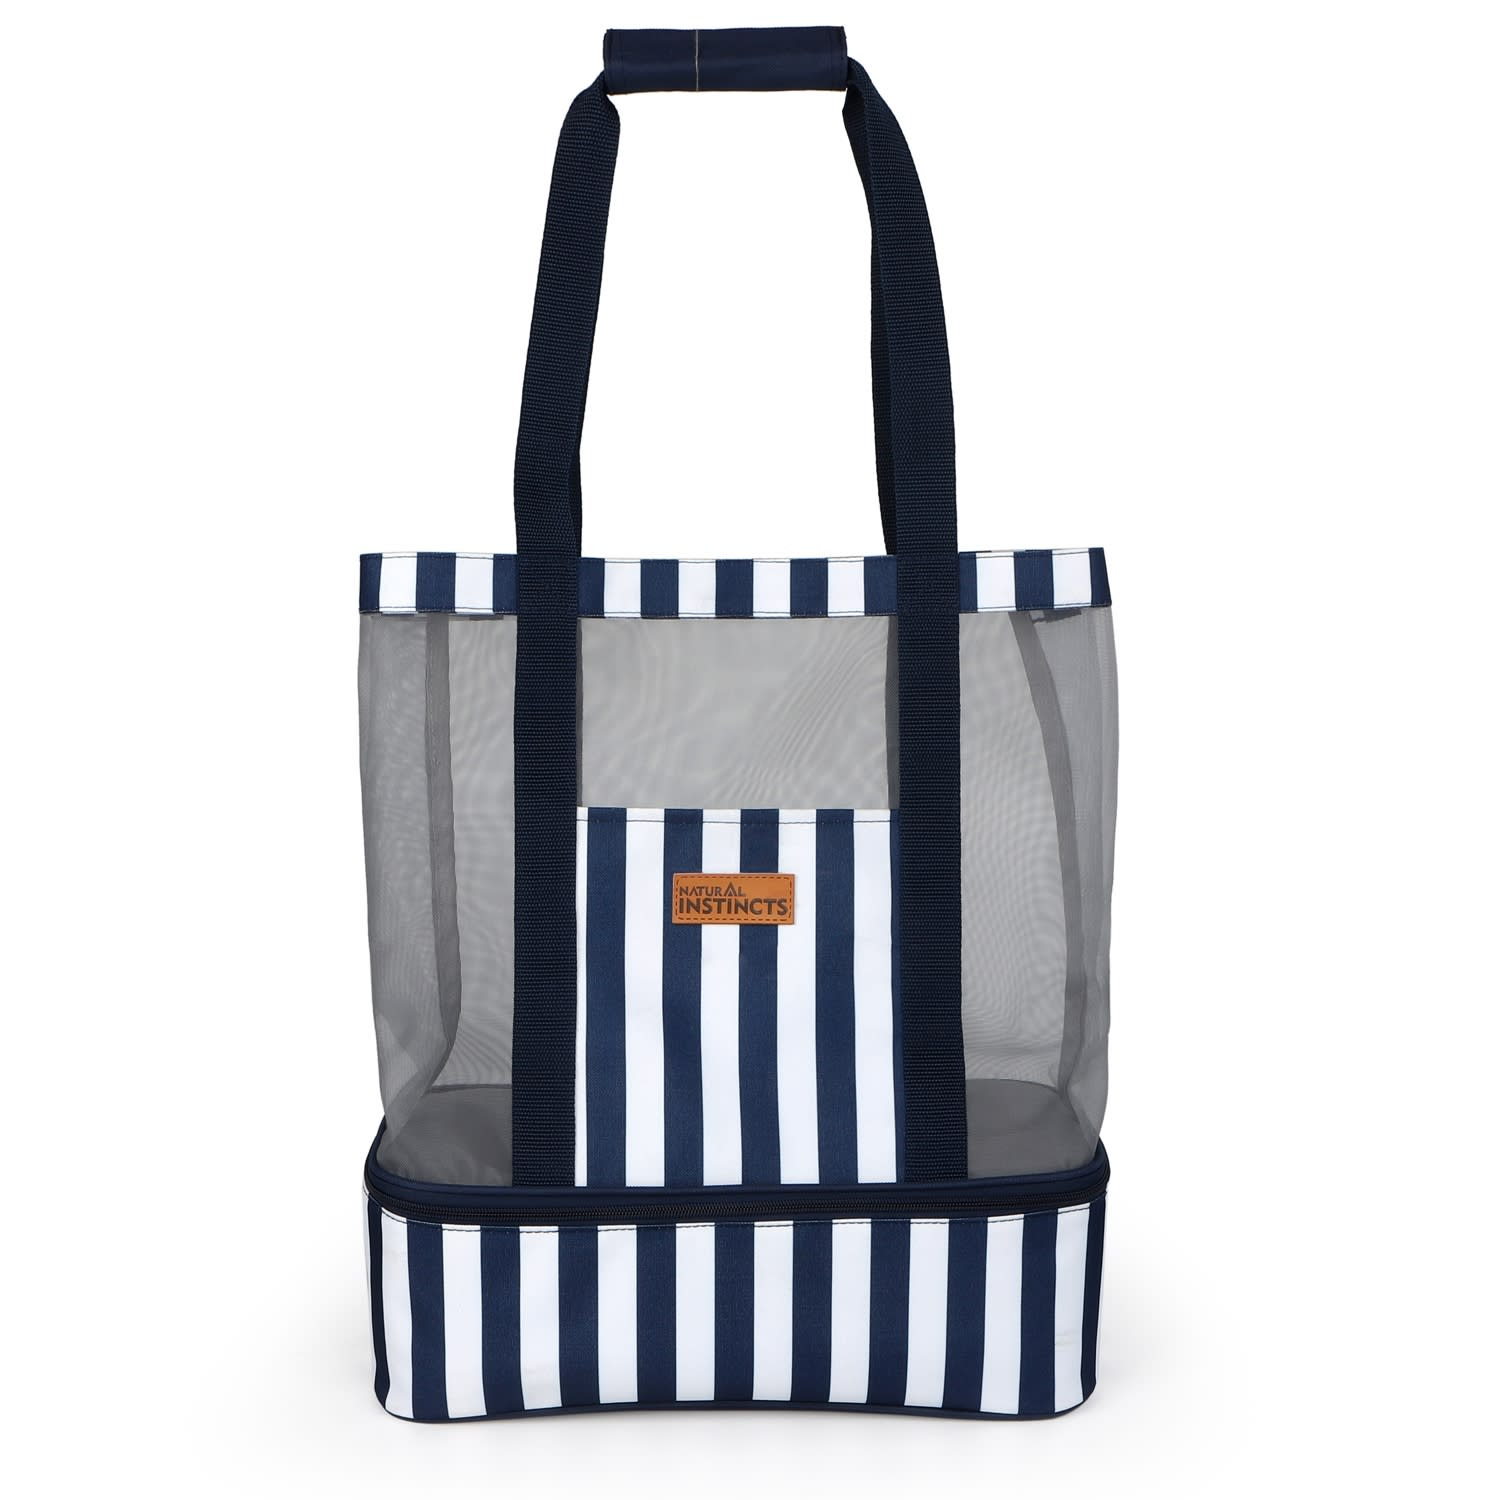 Natural Instincts Beach Cooler bag with mesh